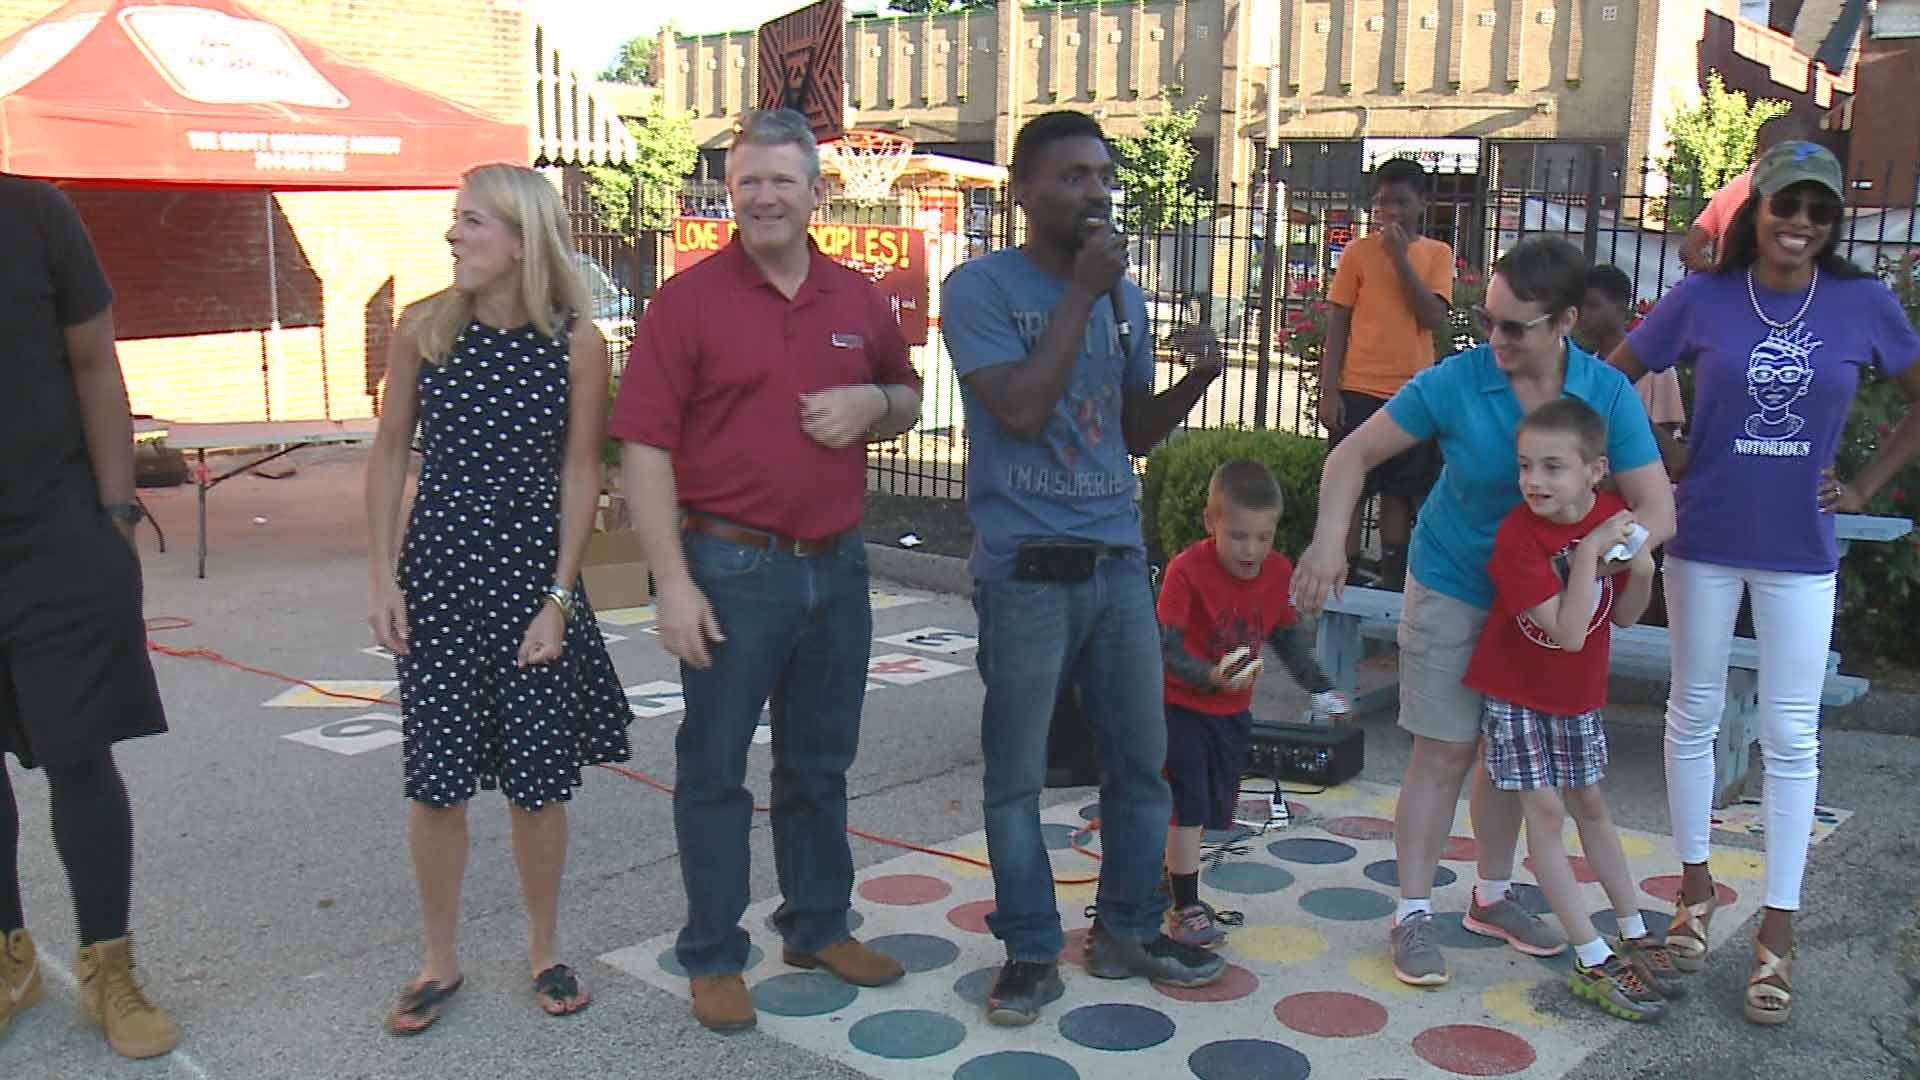 Mo. State Representative Bruce Franks gave out awards in south St. Louis Wednesday to those making a difference. Credit: KMOV